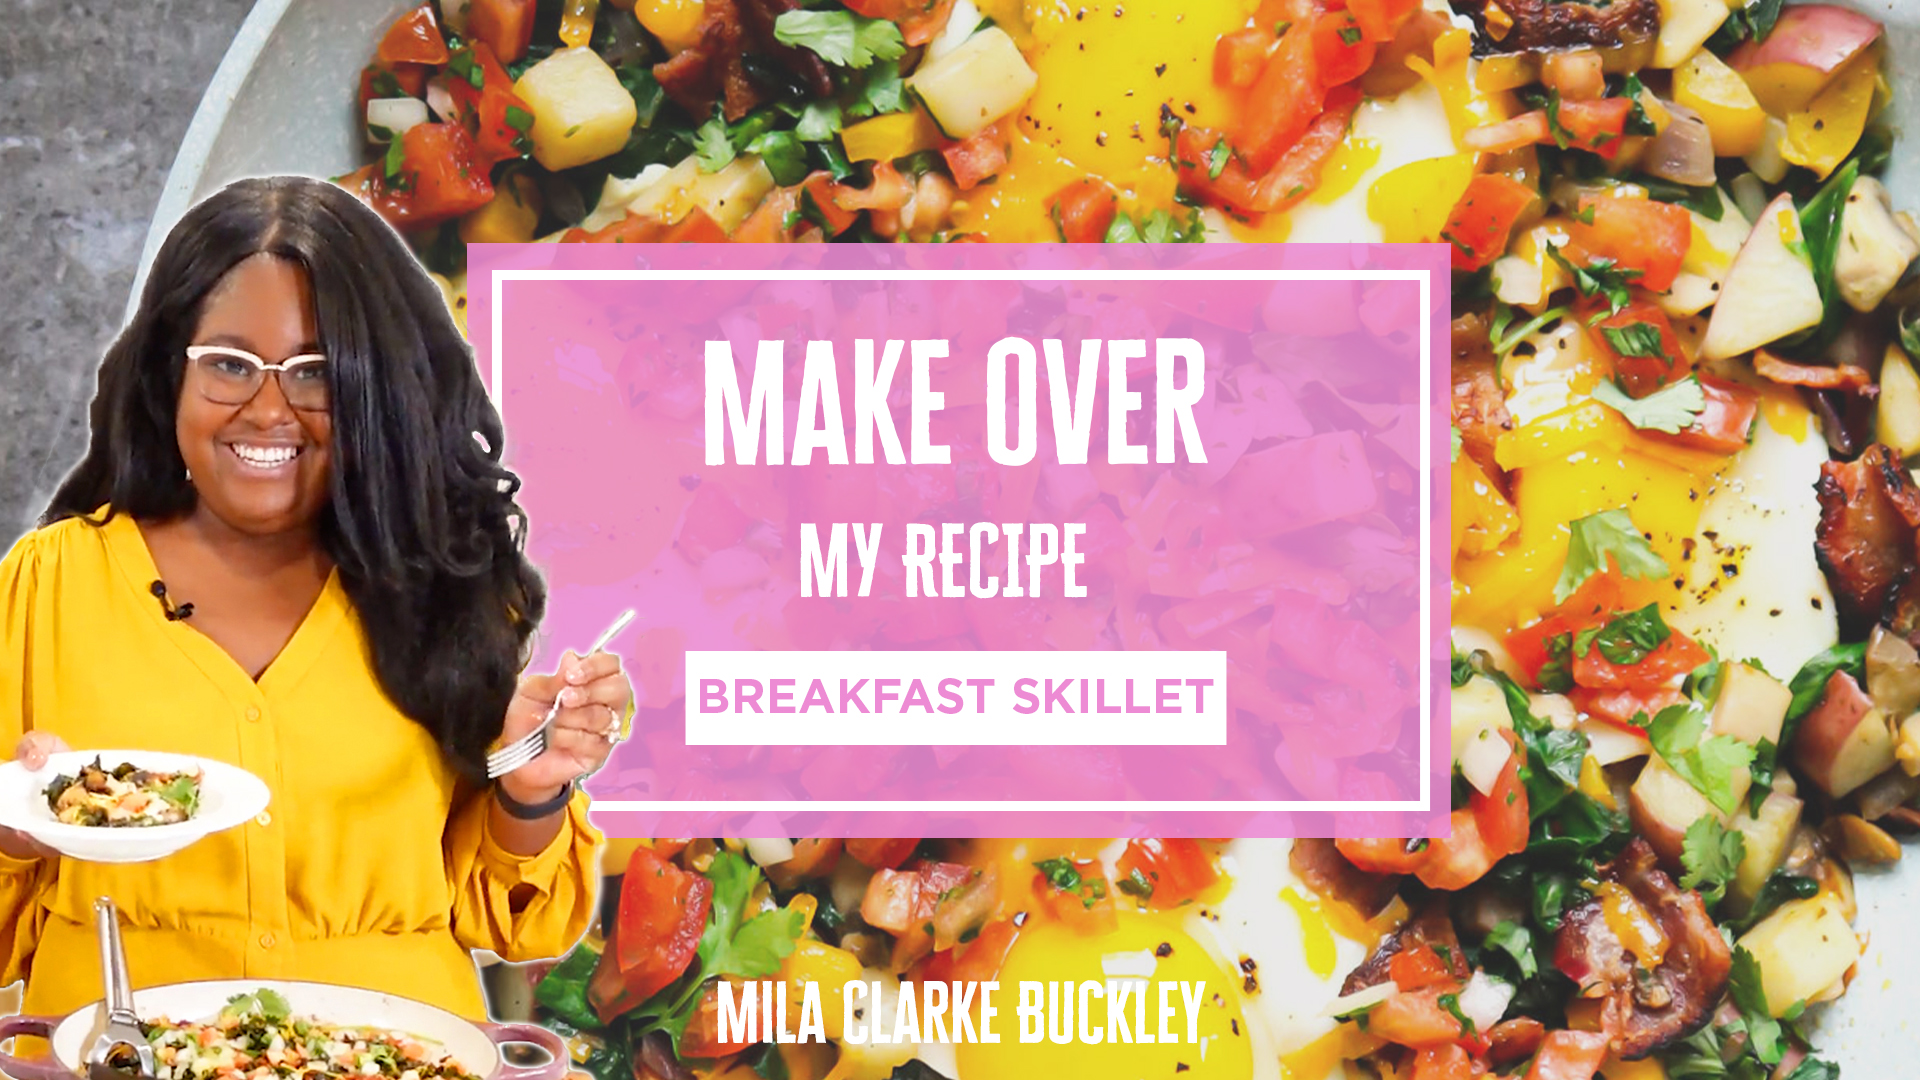 Make Over My Recipe - Breakfast Skillet - Mila Clarke Buckley